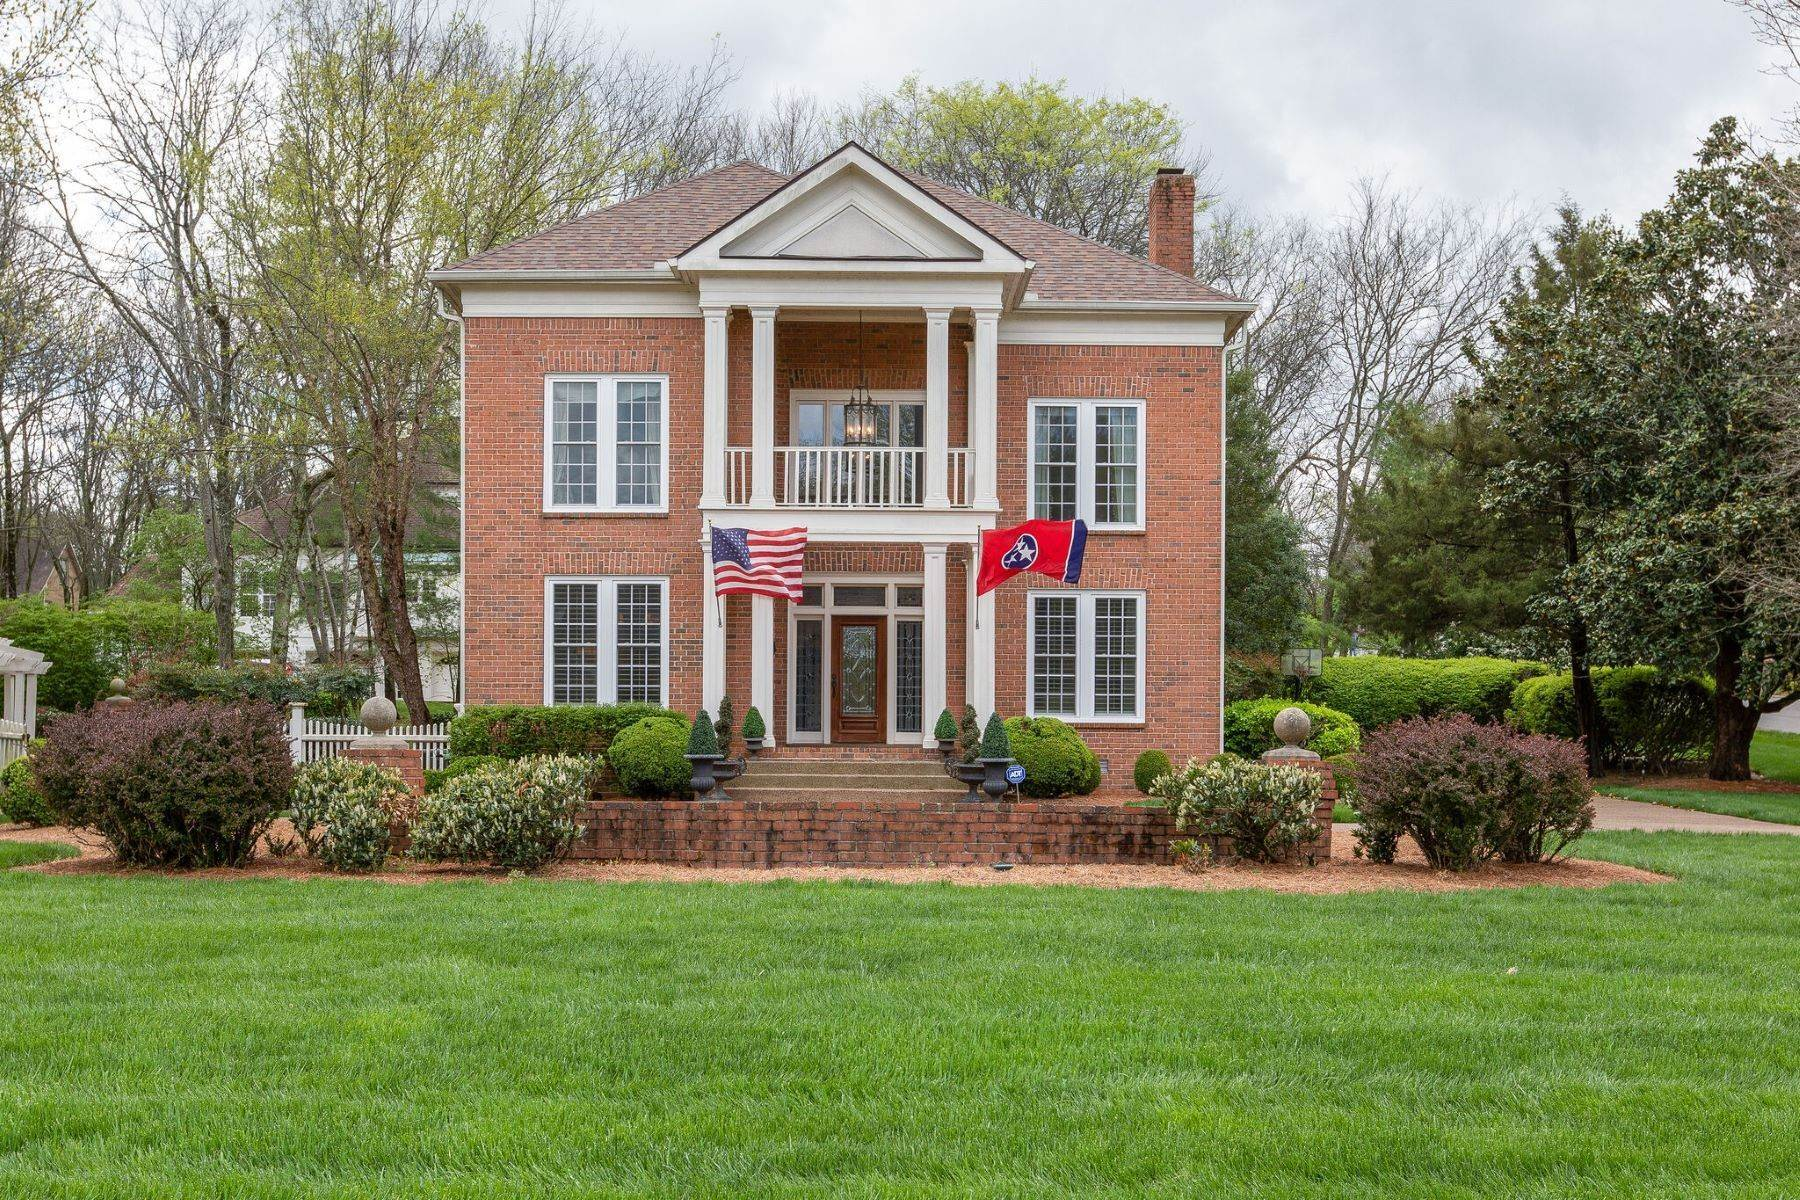 Single Family Homes for Sale at 9101 E Cambridge Ct, Brentwood, Tn, 37027 9101 E Cambridge Ct Brentwood, Tennessee 37027 United States